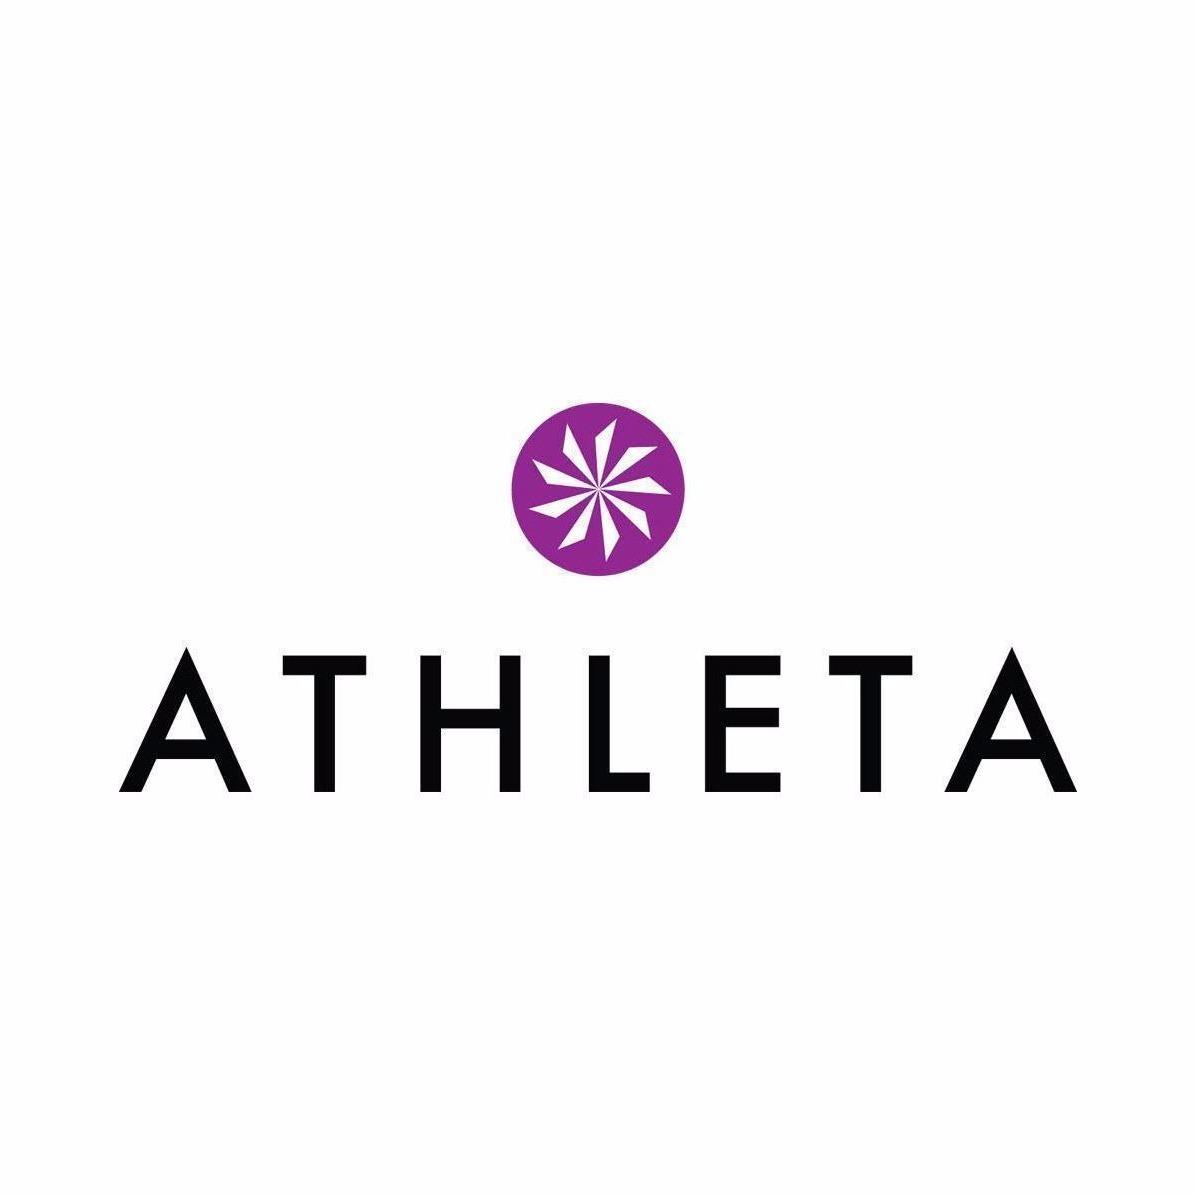 Athleta image 1